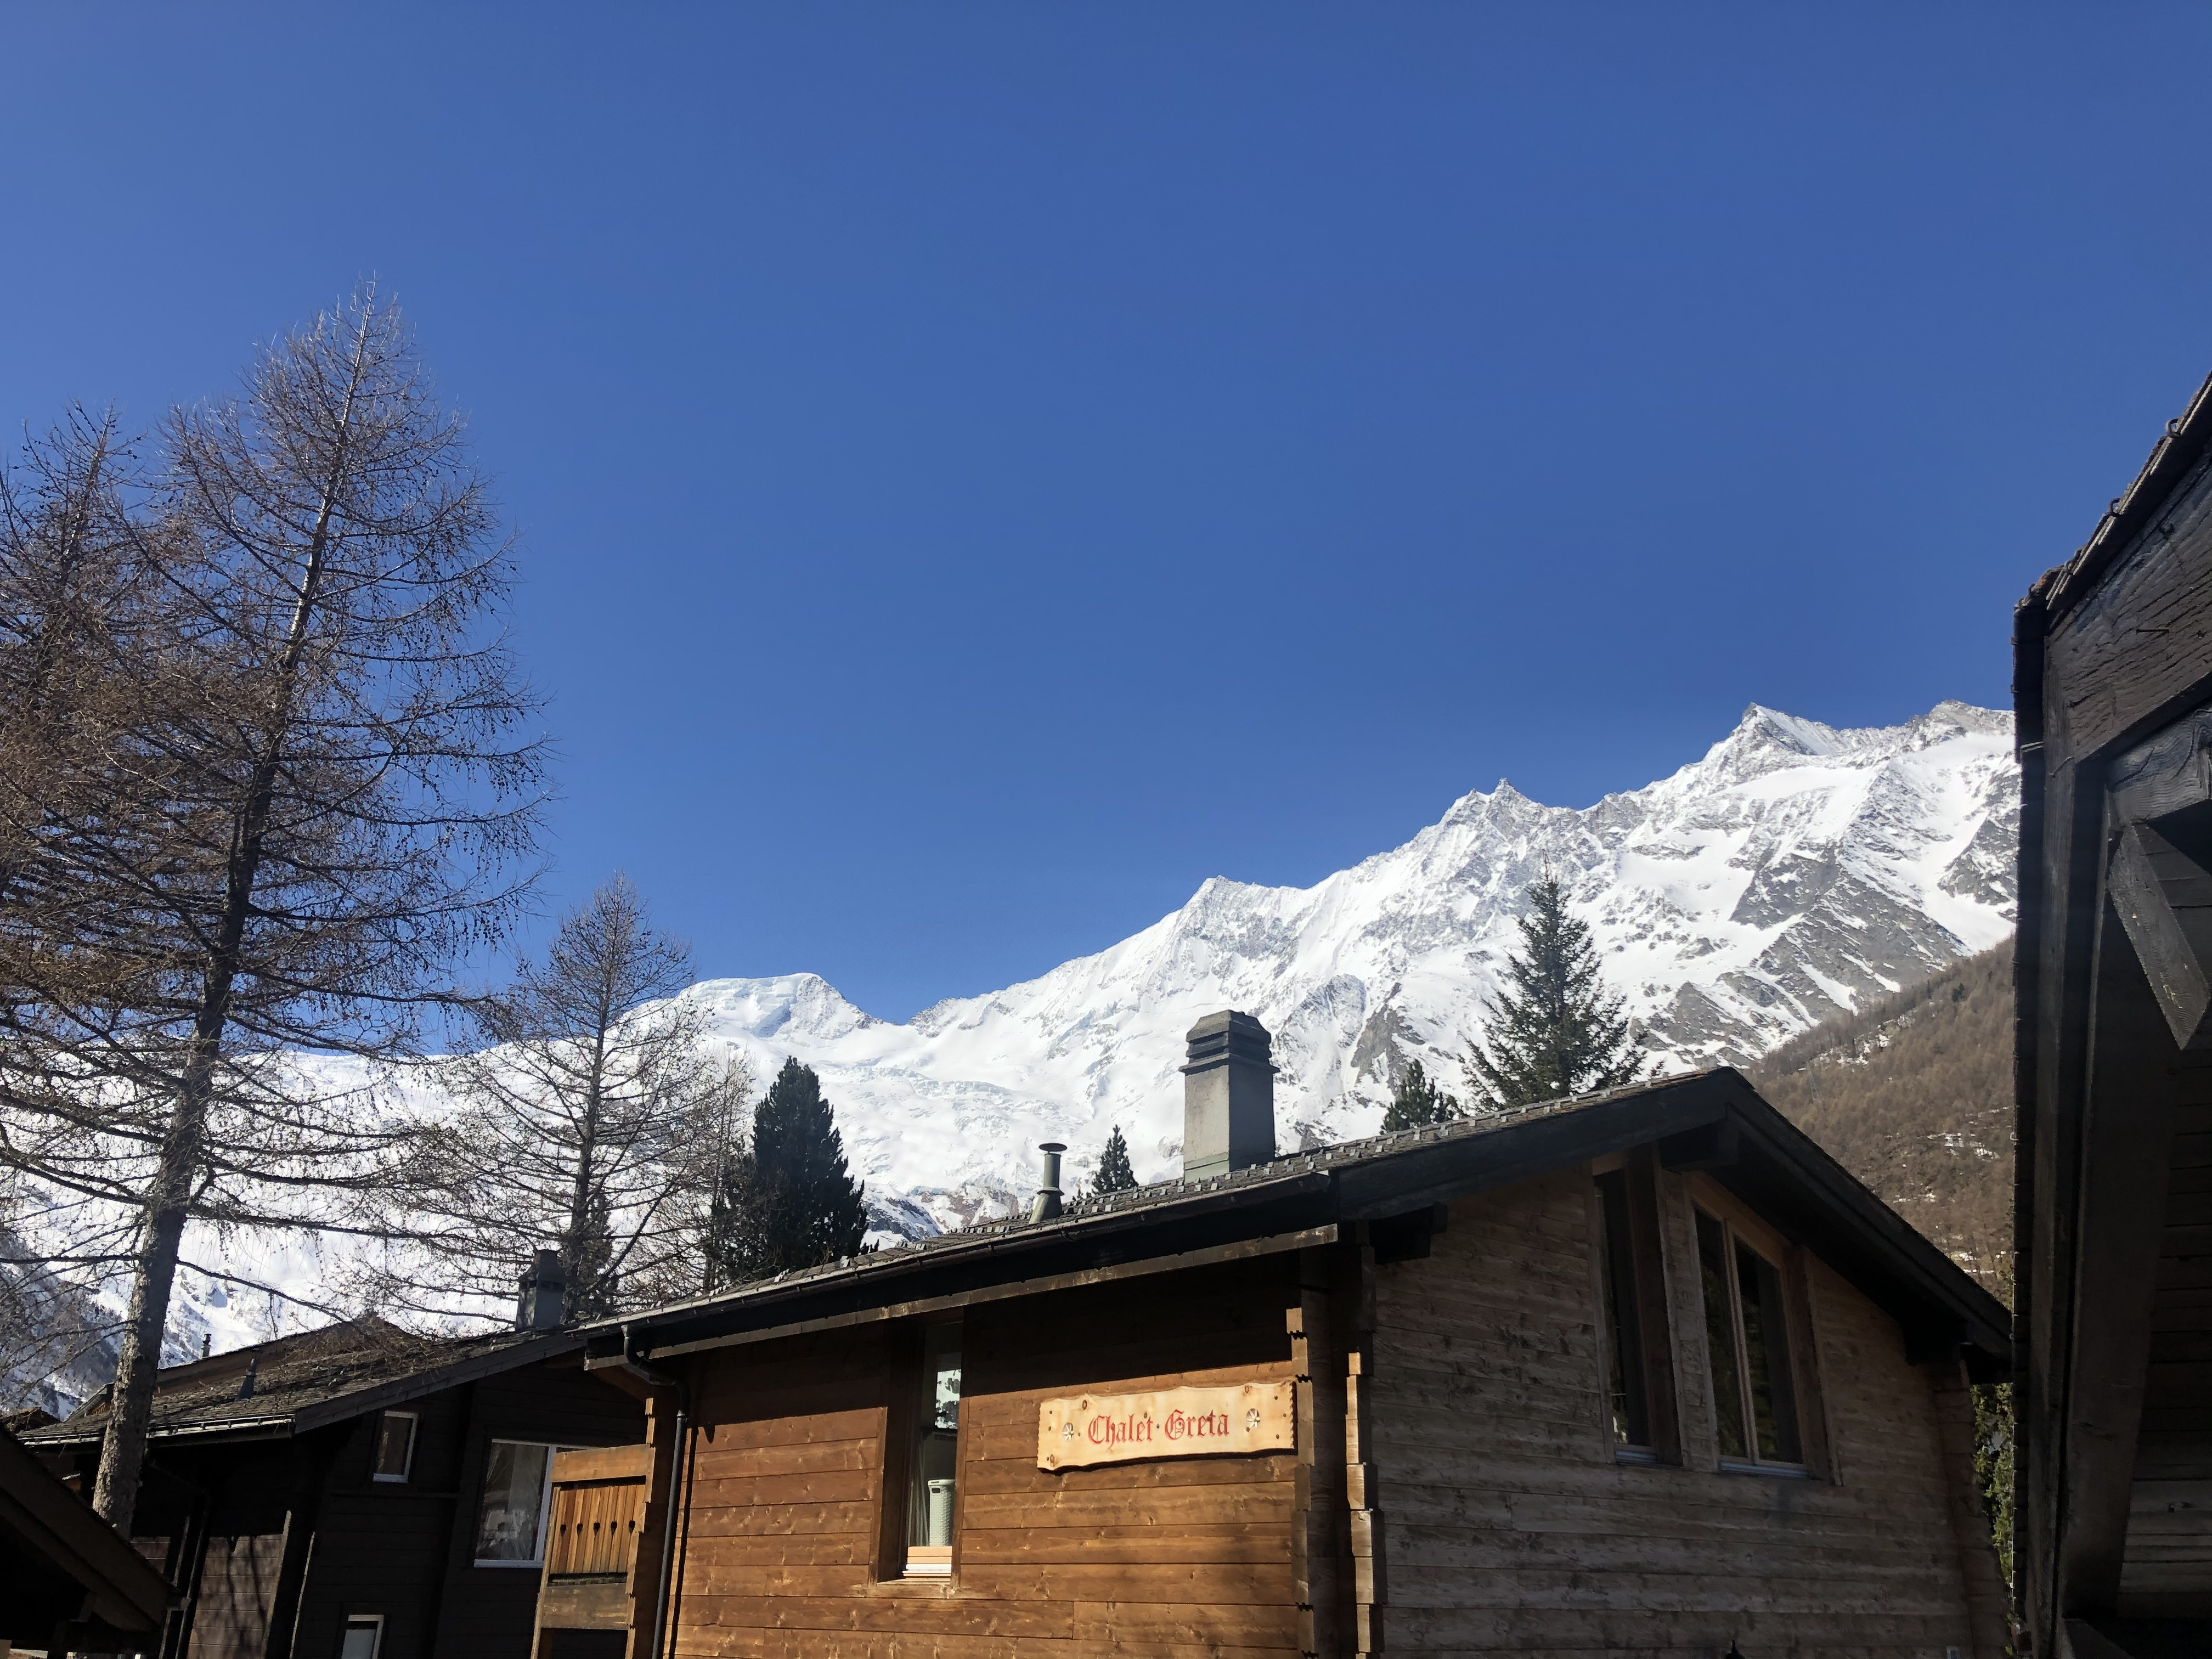 Surprise single chalet in the Alps